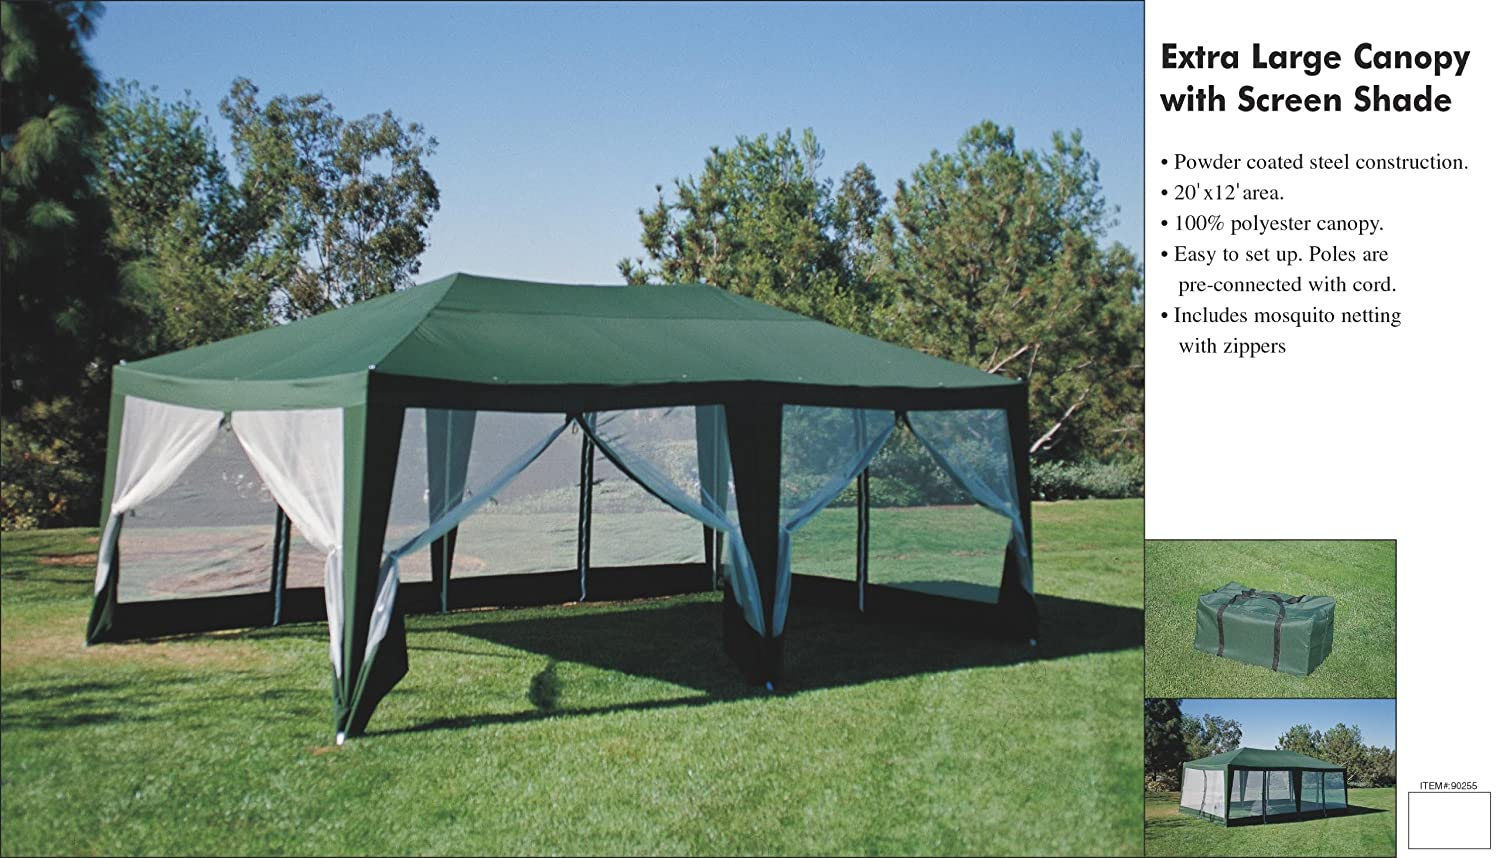 Amazon.com Deluxe Party Tent Sun Shelter 20ftx12ft Green Sports u0026 Outdoors & Amazon.com: Deluxe Party Tent Sun Shelter 20ftx12ft Green: Sports ...